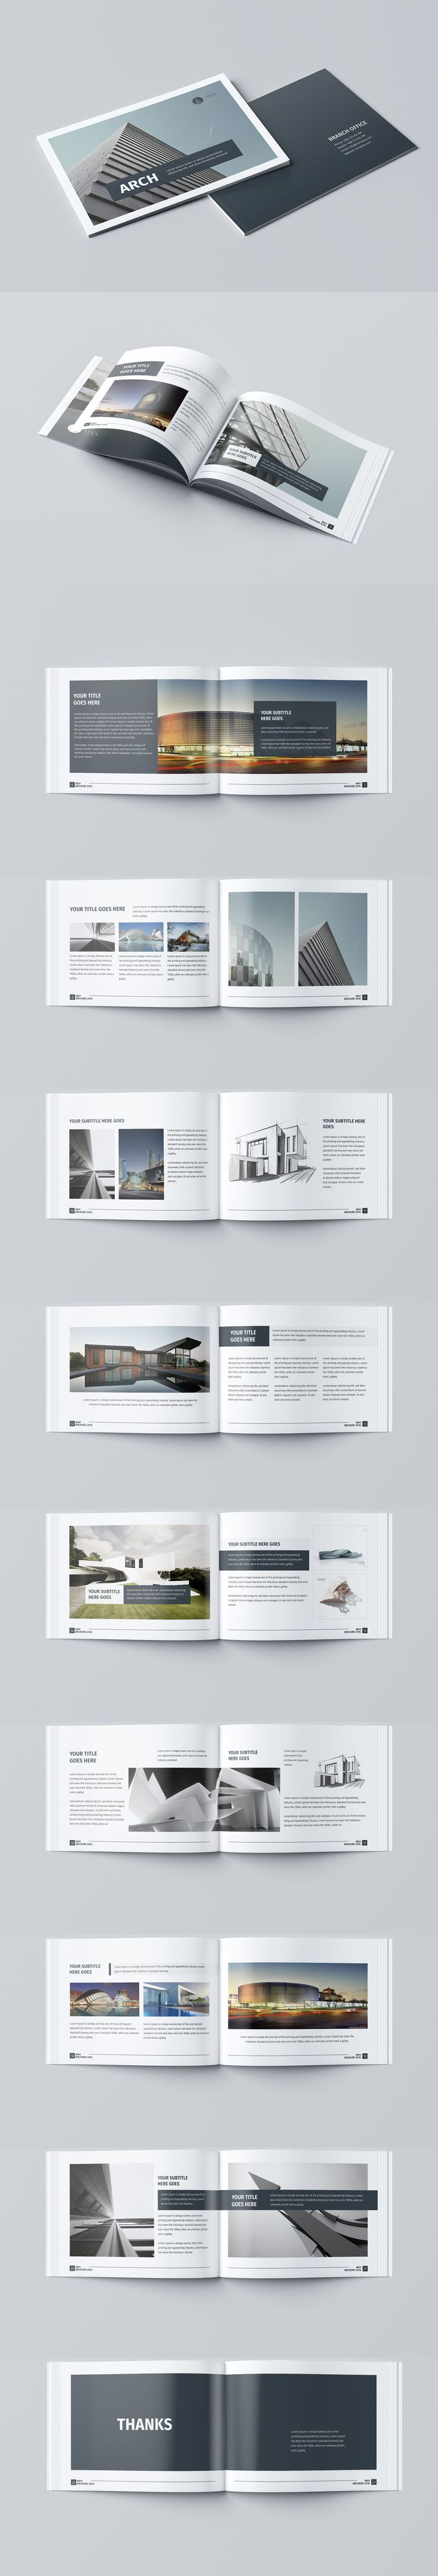 Modern Architecture Brochure 24 Pages A4 & A5 Template InDesign INDD